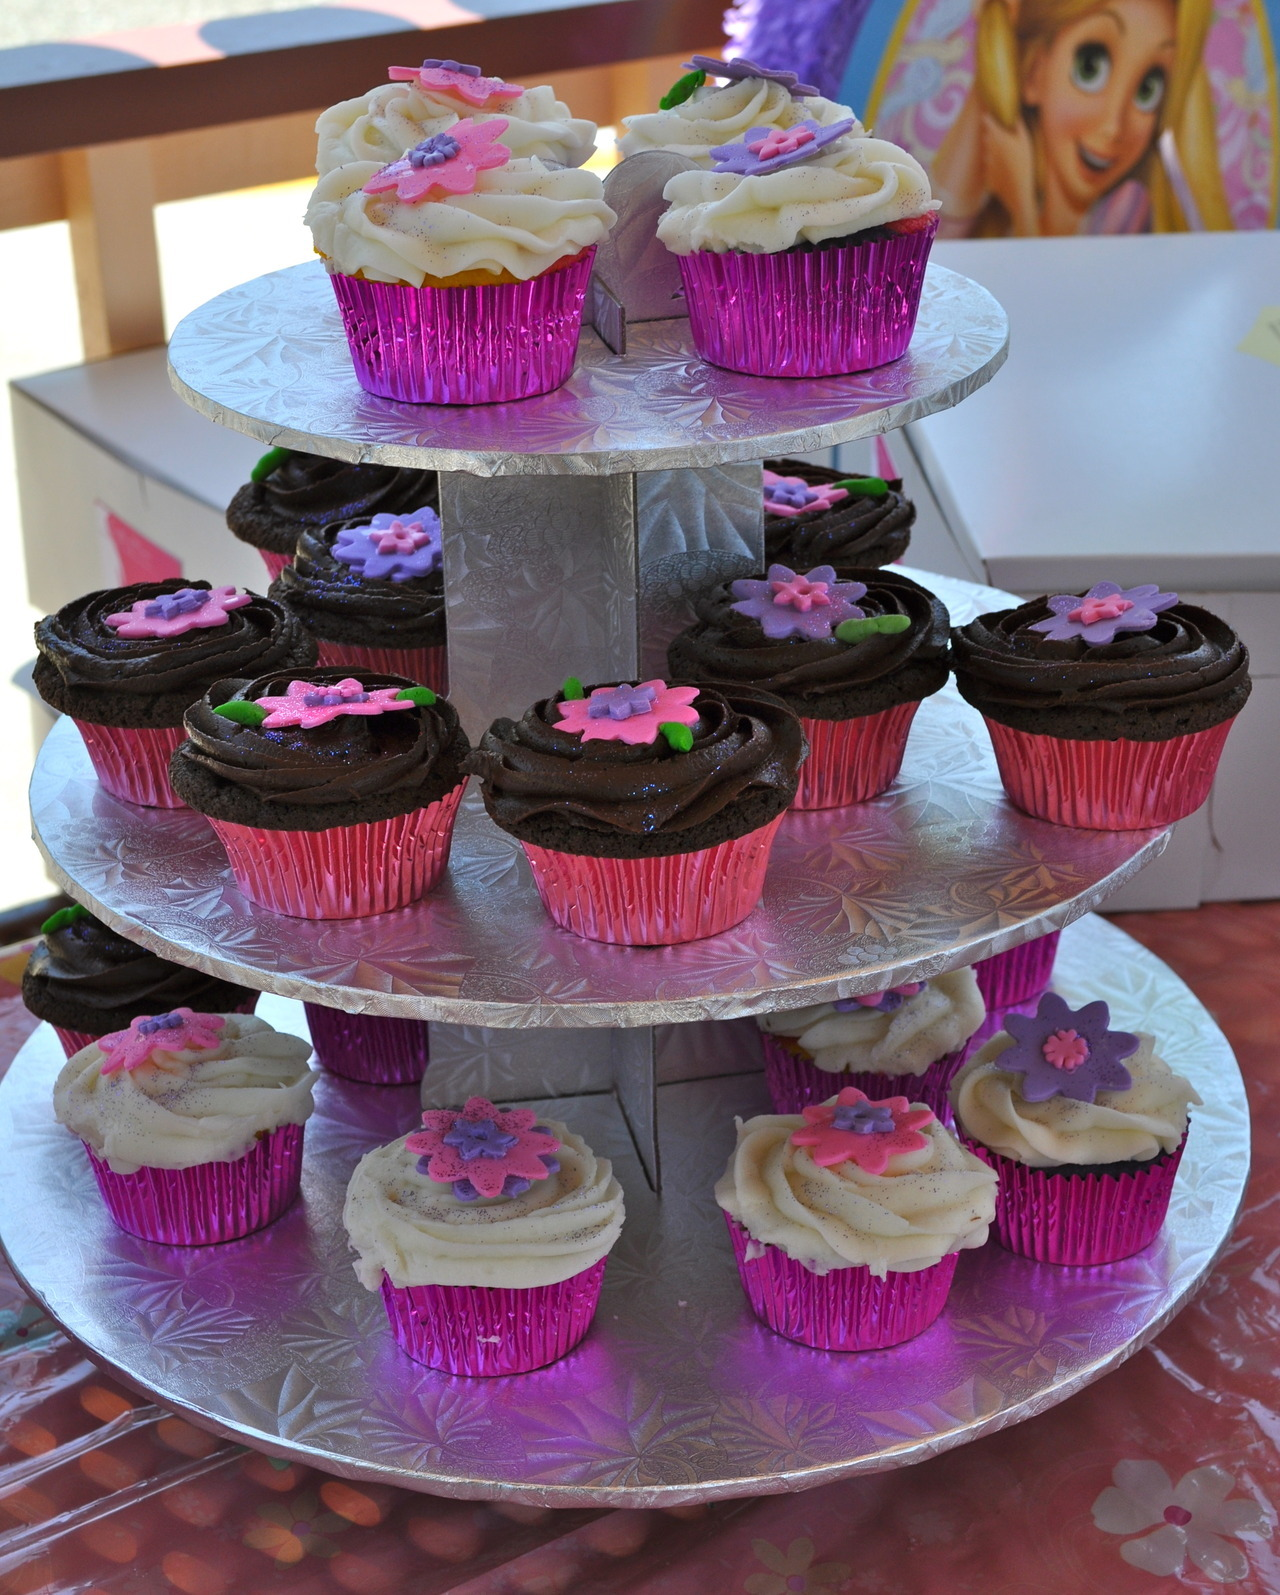 Chocolate and Vanilla Cupcakes  Made by: Maura Bogni-Rodriguez